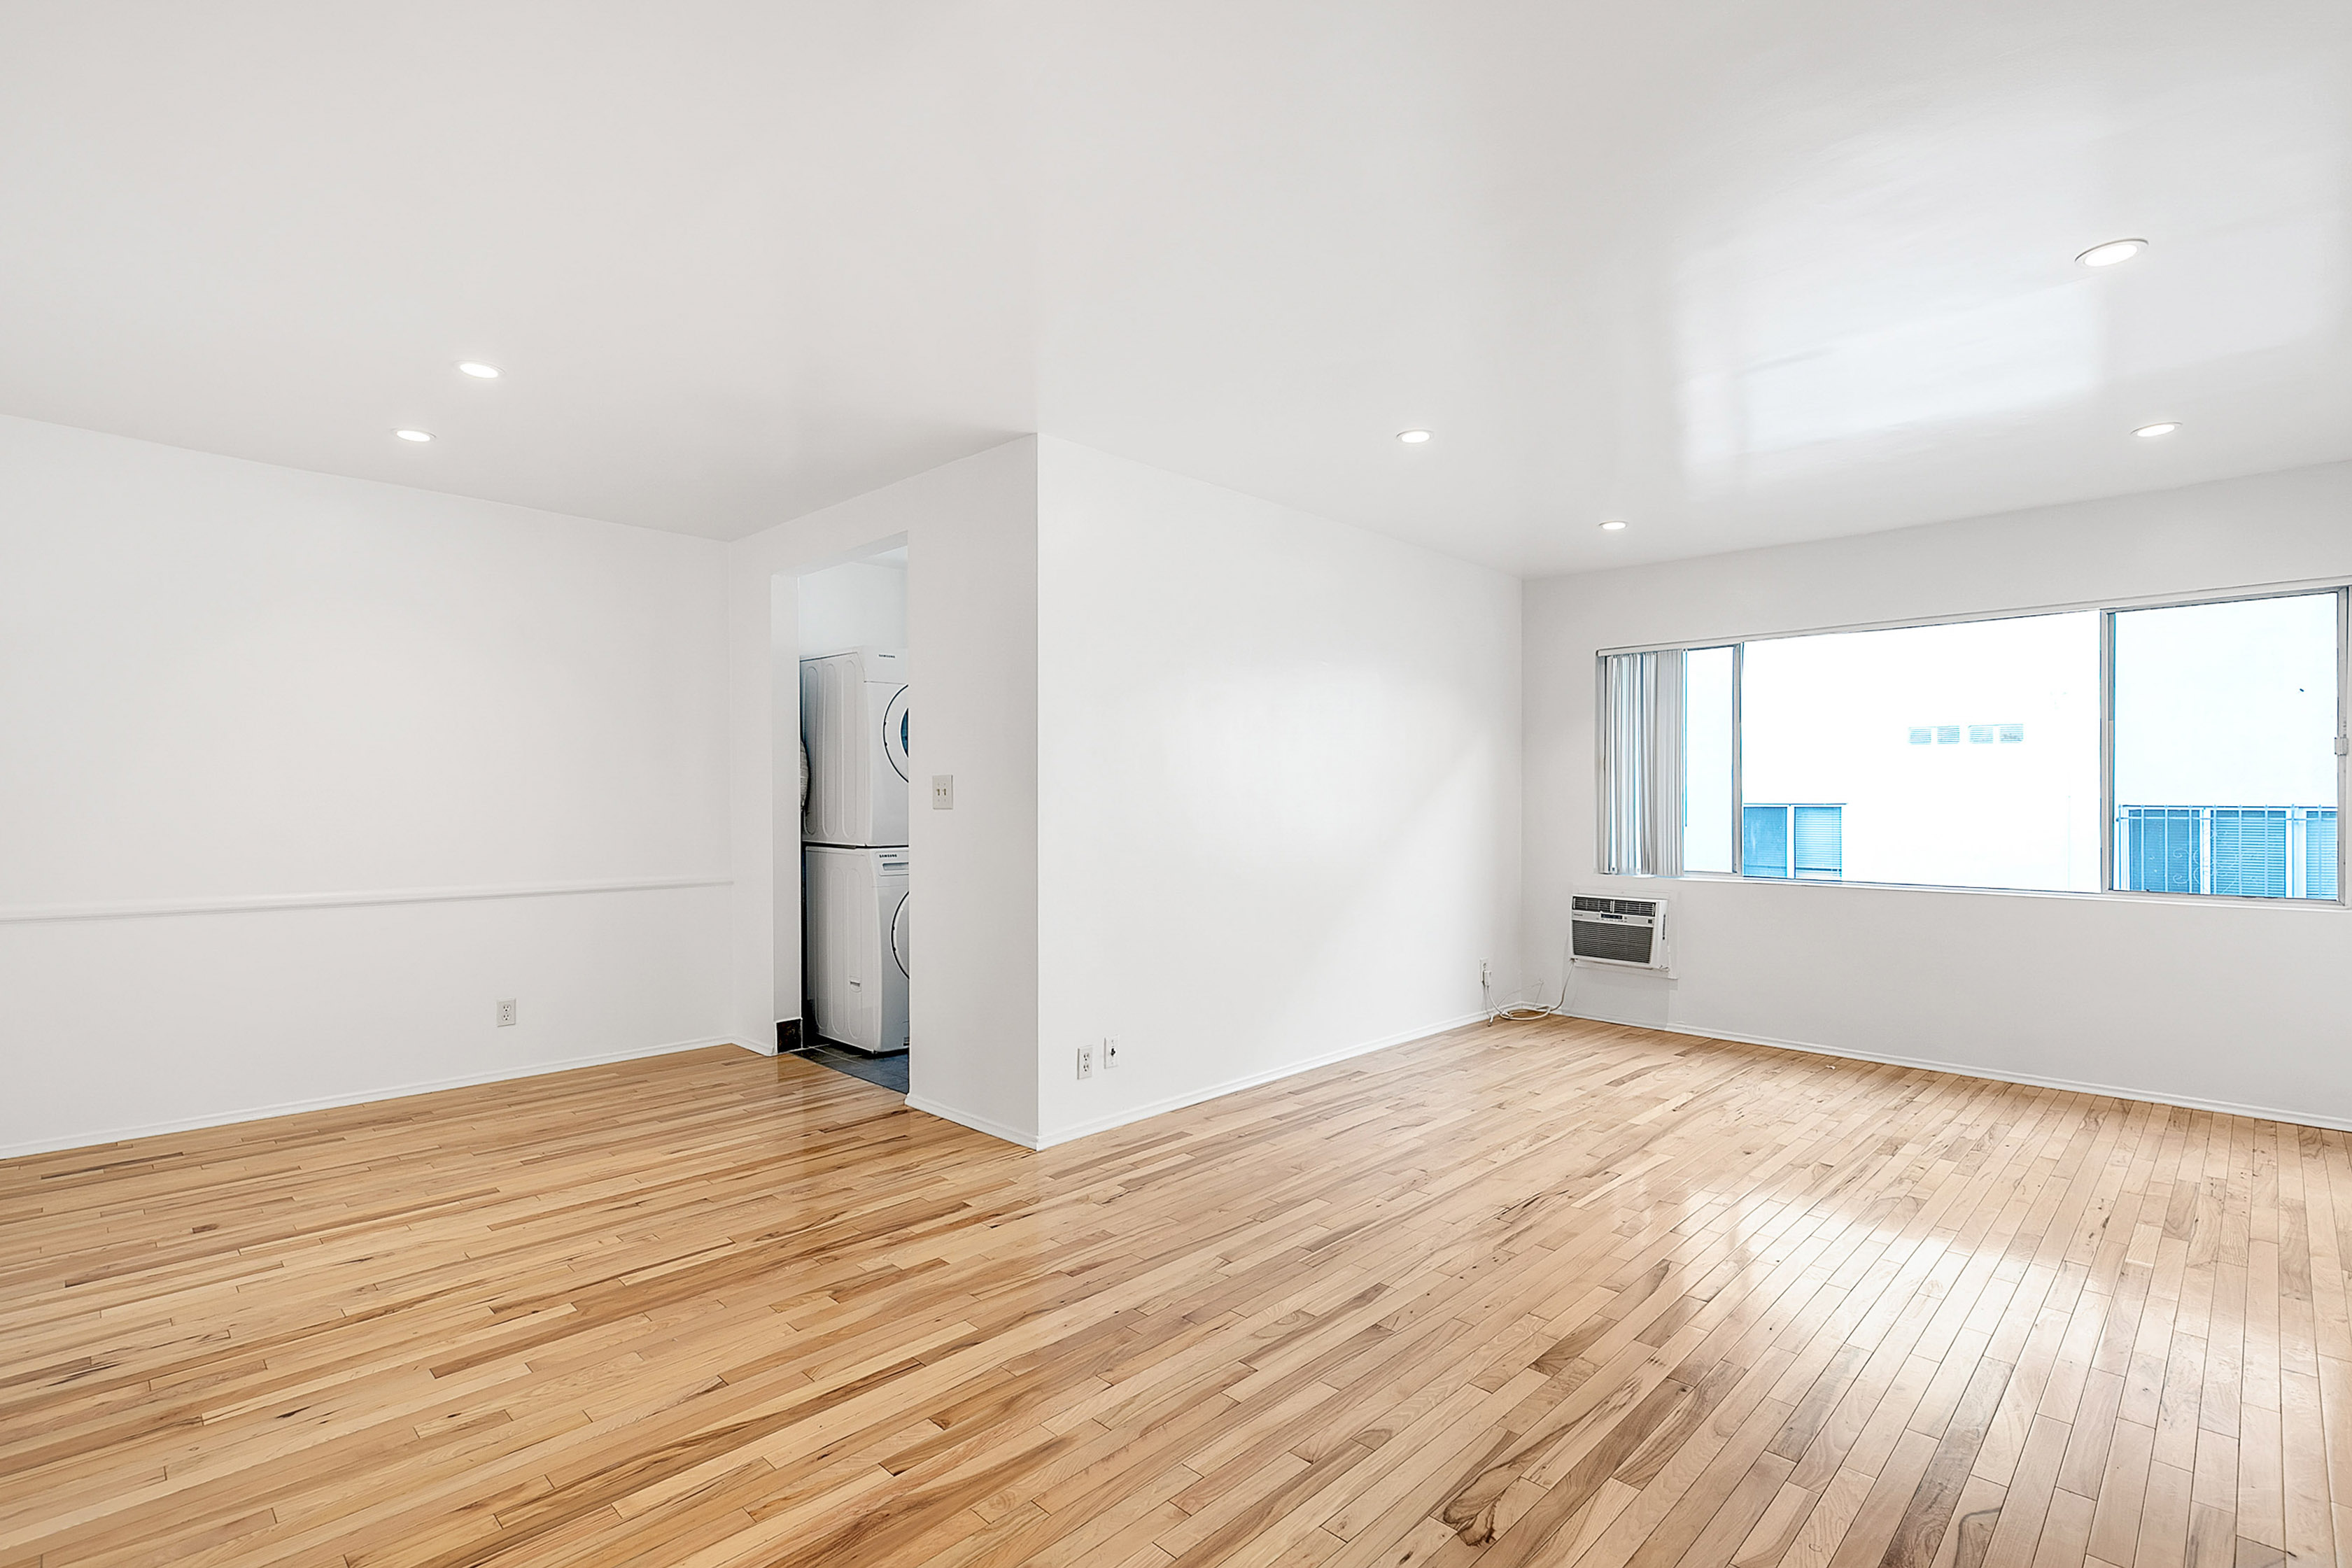 Top-Floor 1BR/ 1BA w/ Washer & Dryer in Unit, Dishwasher, Dining Area, and Parking in La Cienega Heights